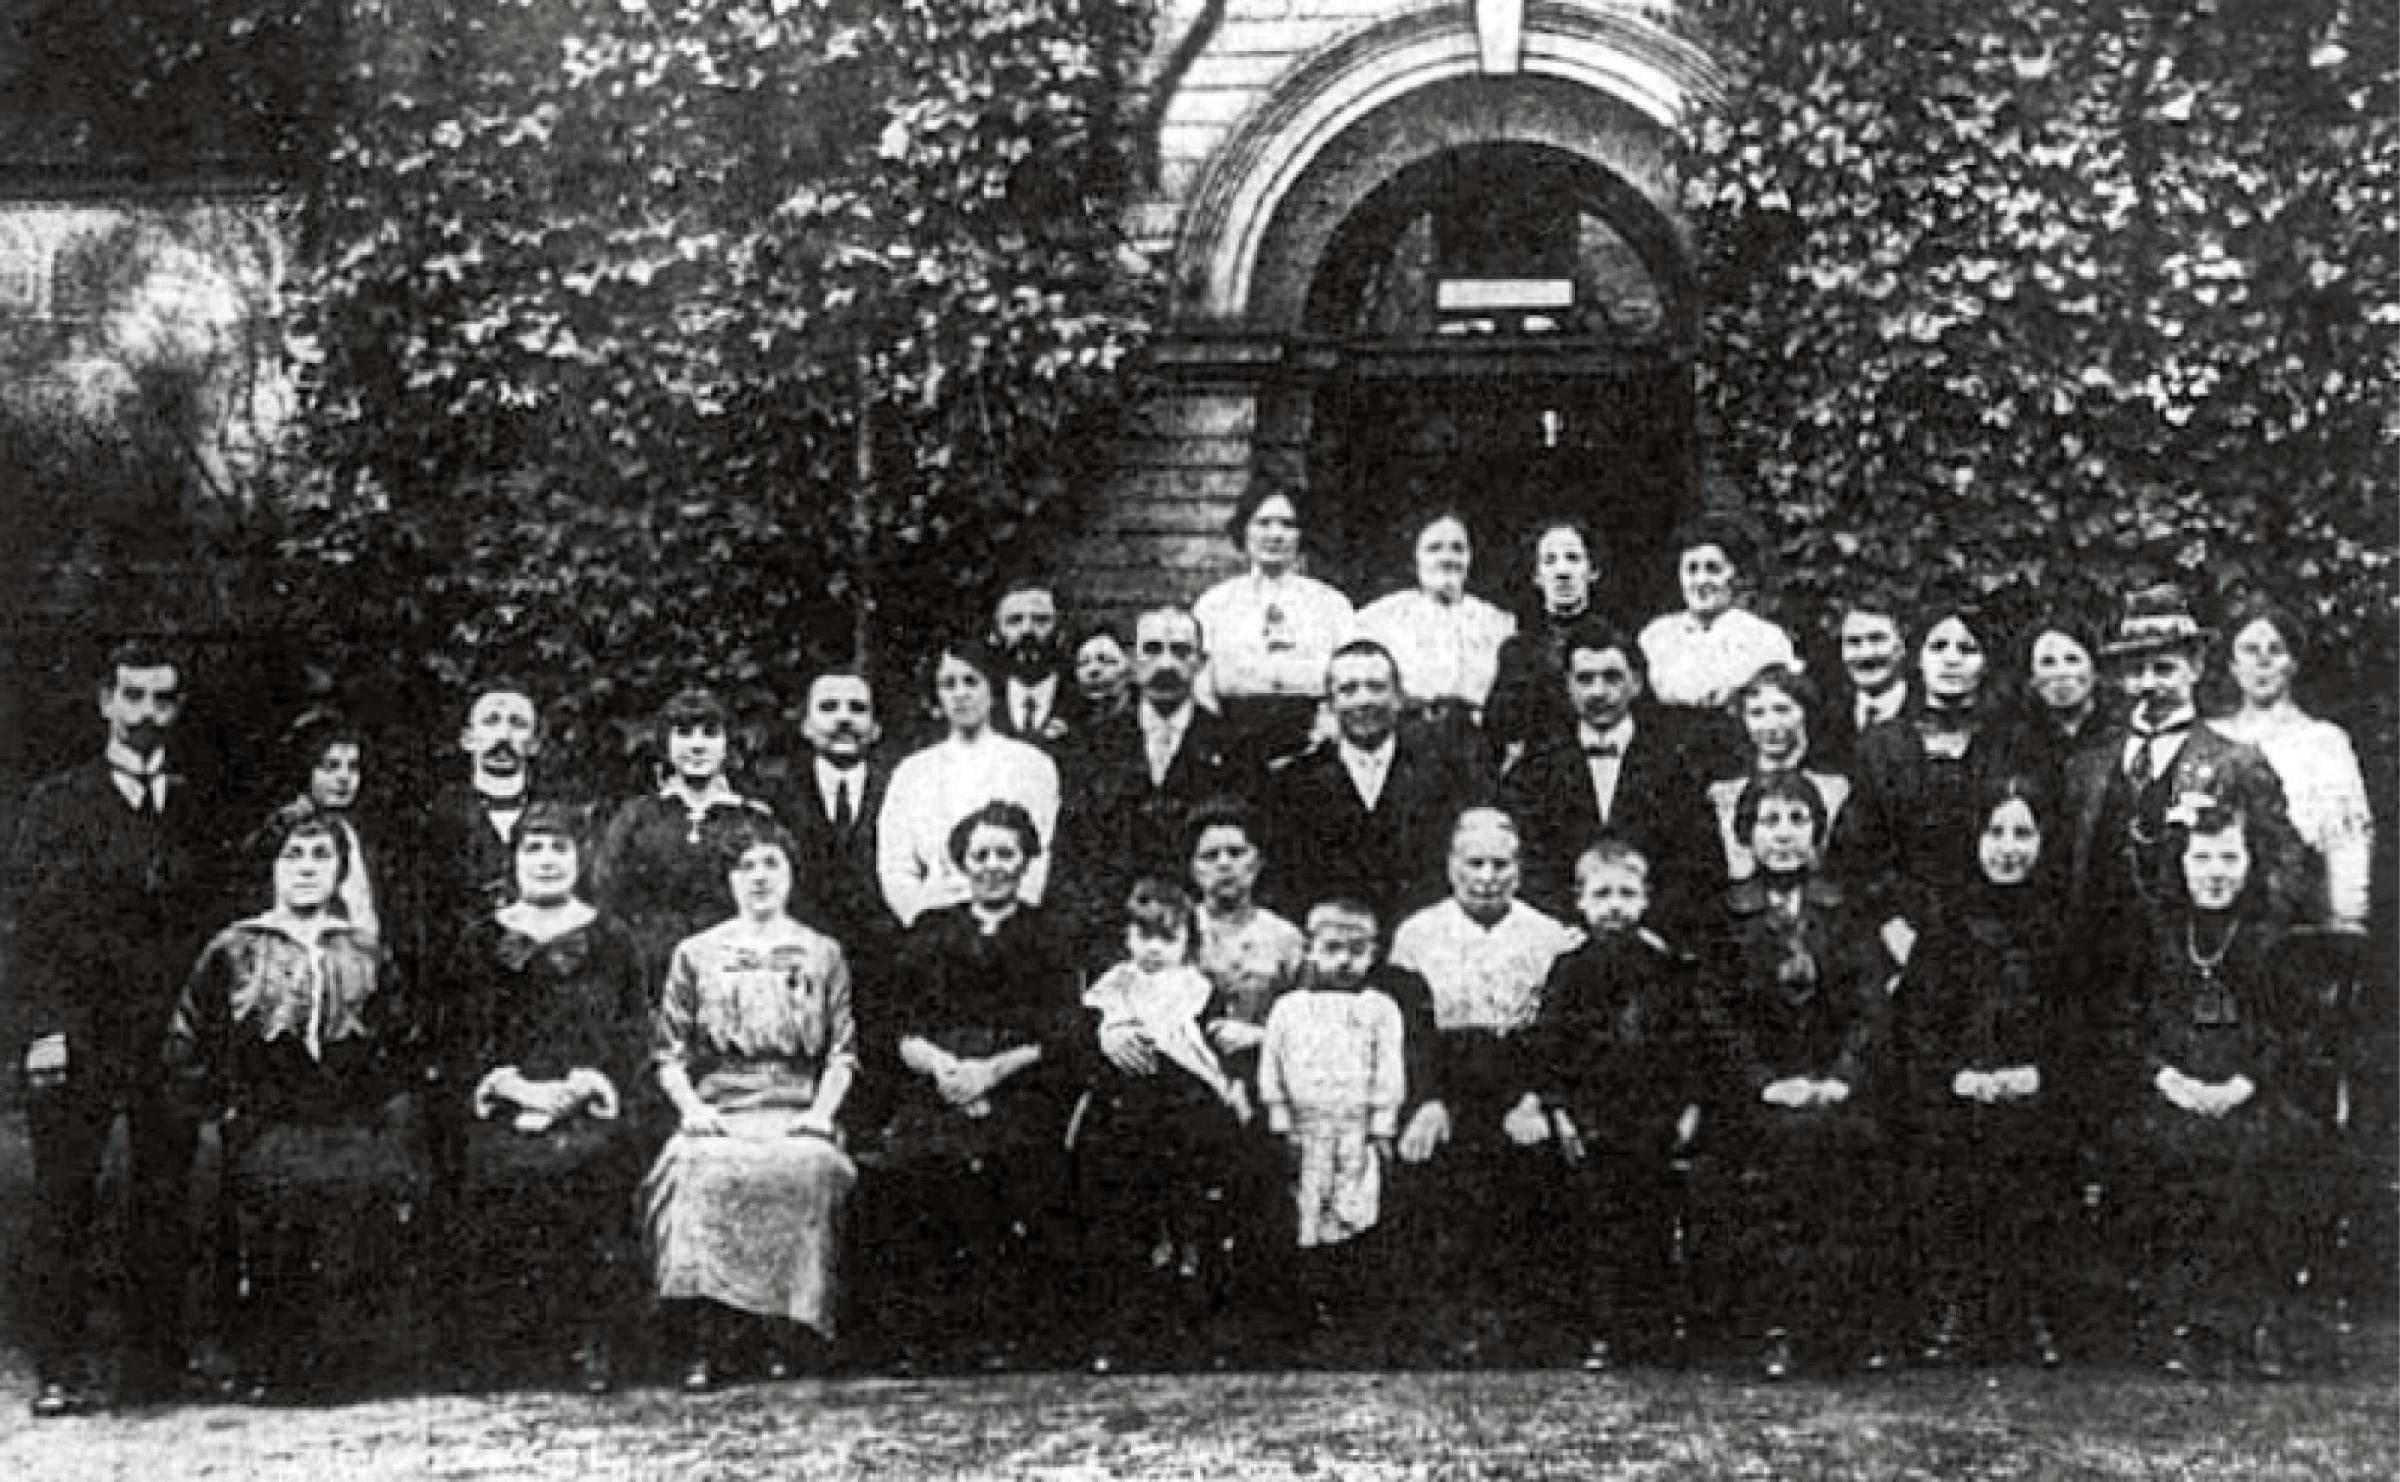 The Belgium refugees who made their home in Baildon during the First World War.